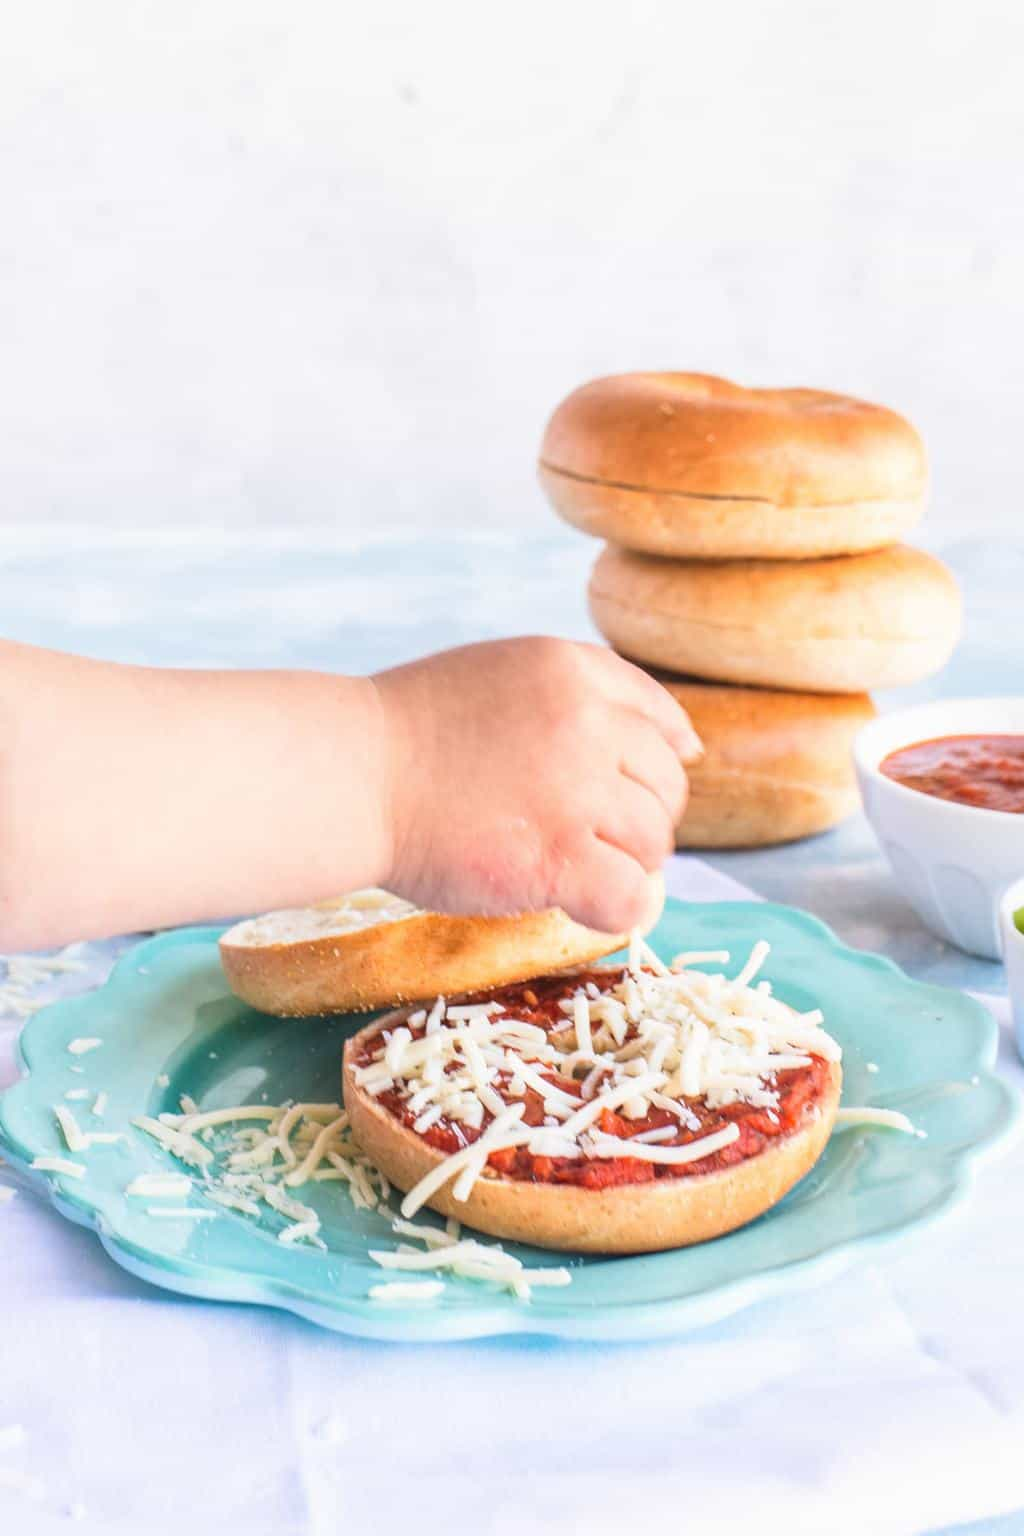 Healthy Kids Lunch Ideas Bagel Pizza Toppings by top Houston lifestyle blogger Ashley Rose of Sugar & Cloth